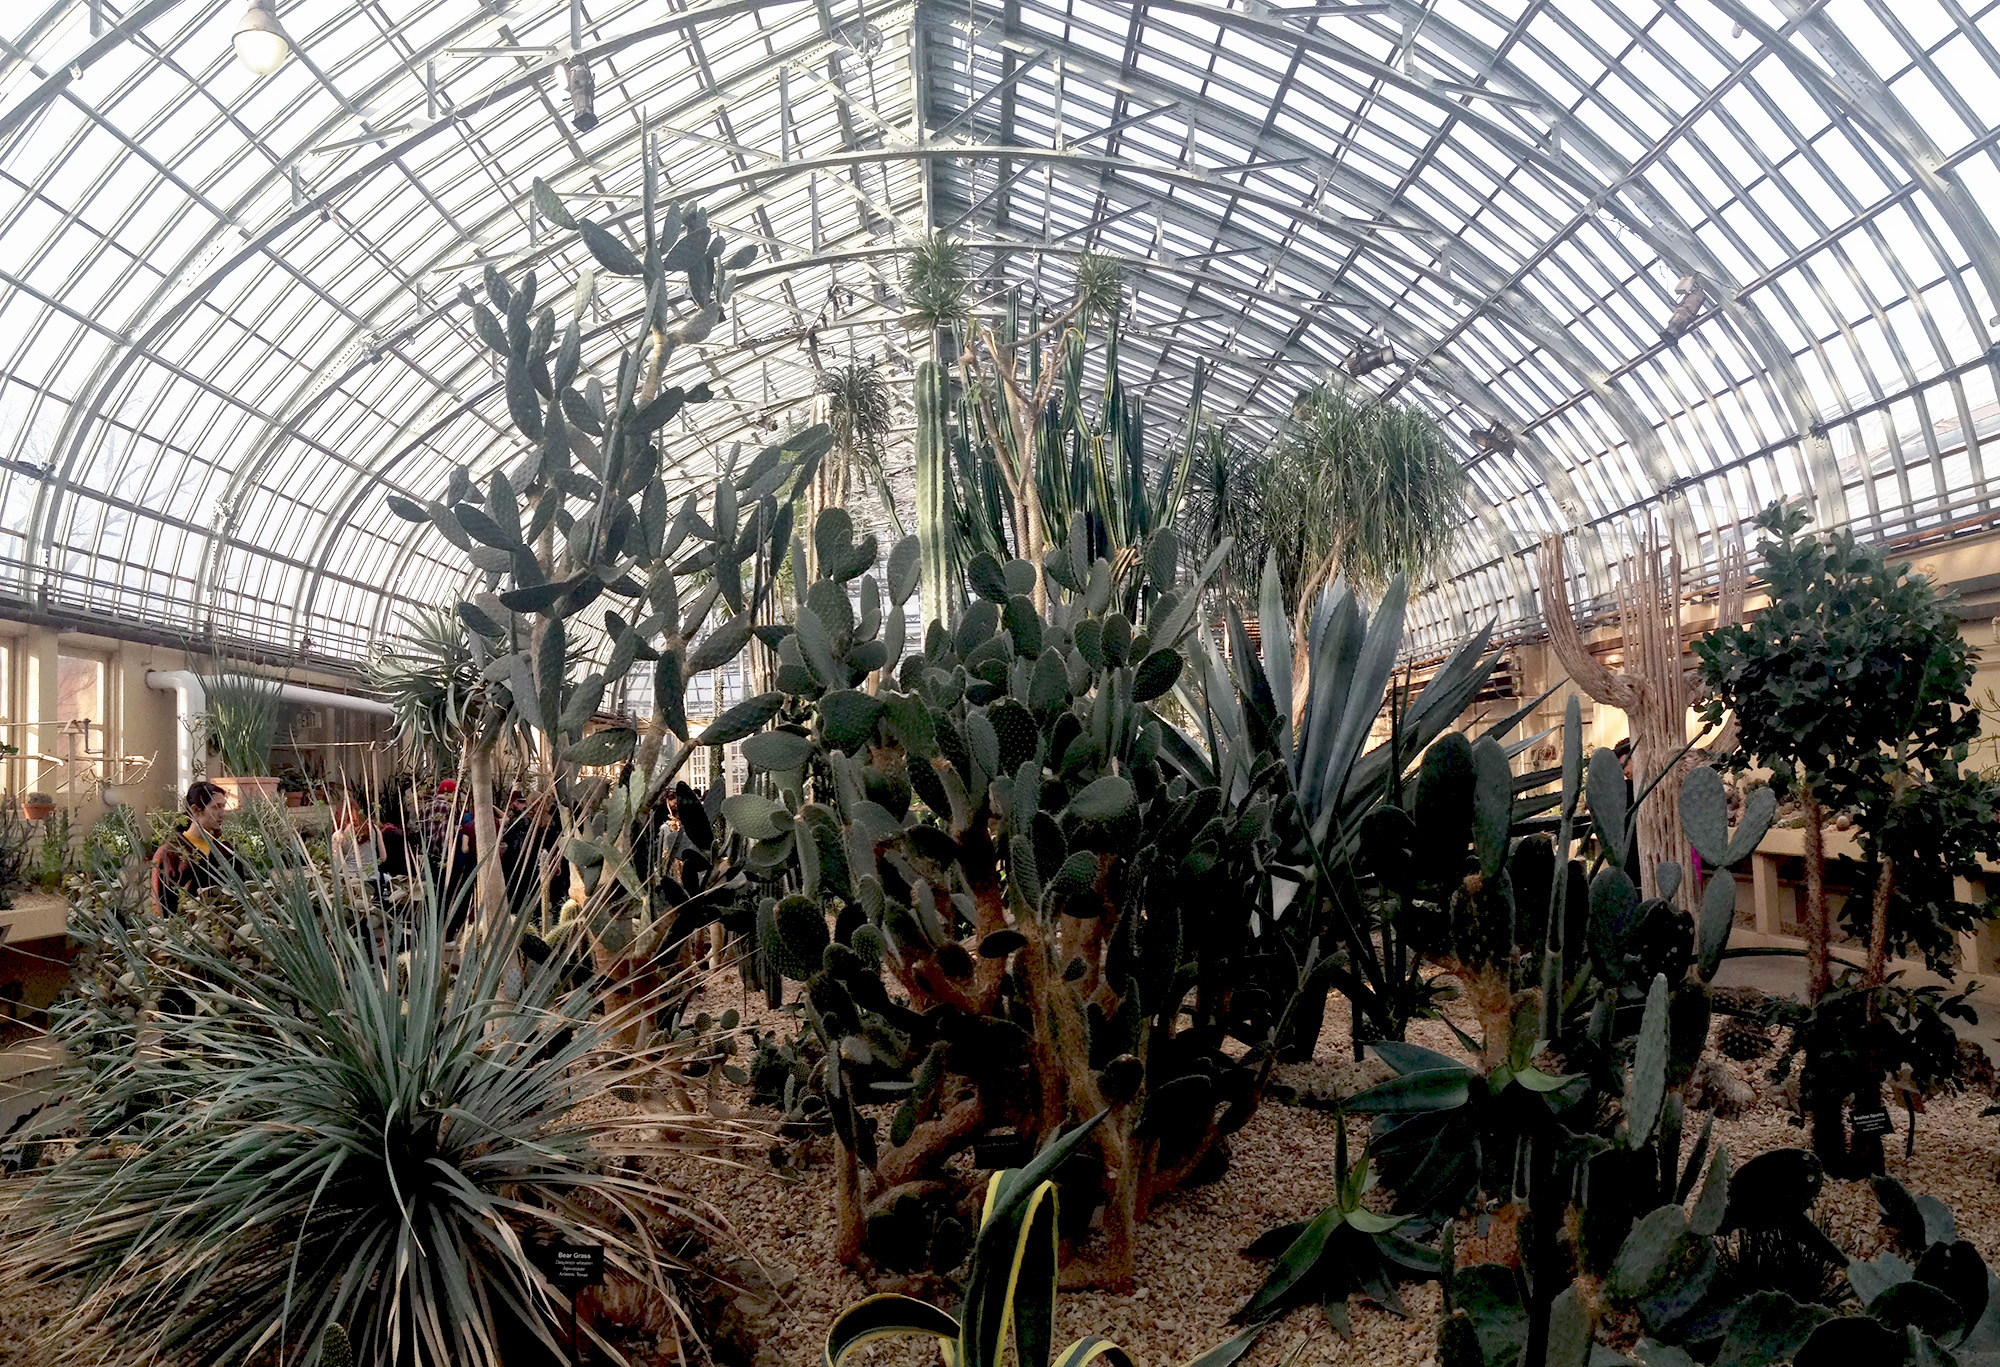 Desert Room, Garfield Park Conservatory, Chicago Illinois